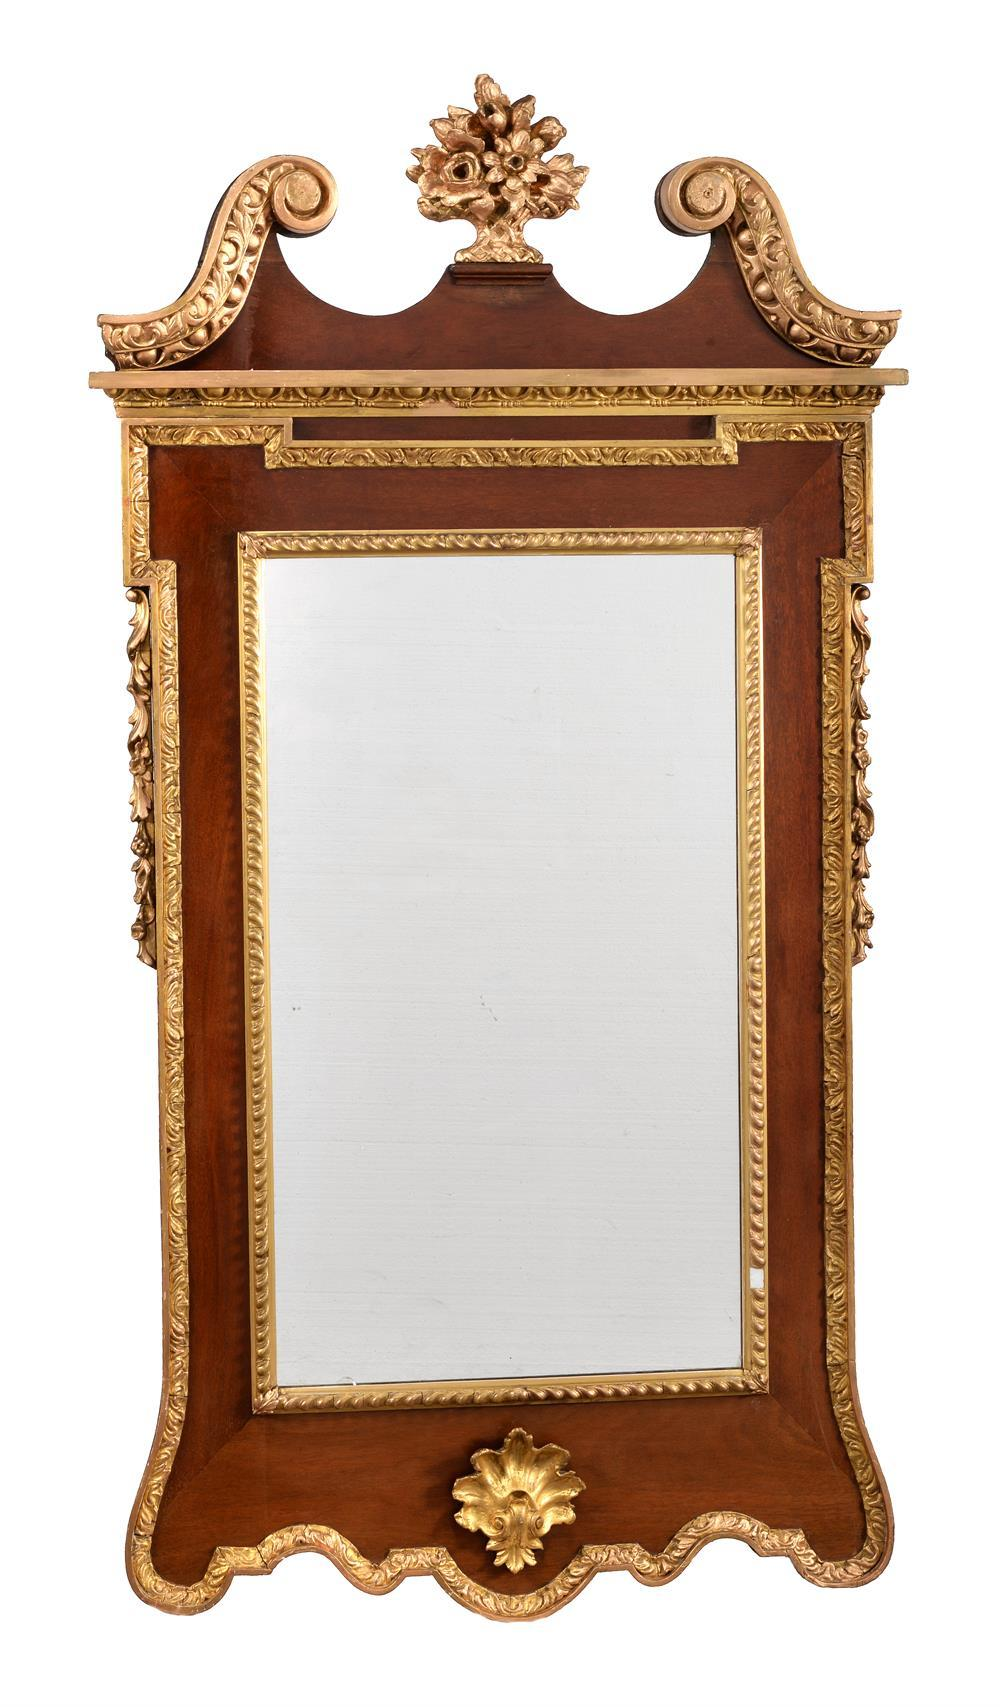 A Mahogany and giltwood wall mirror in George II style